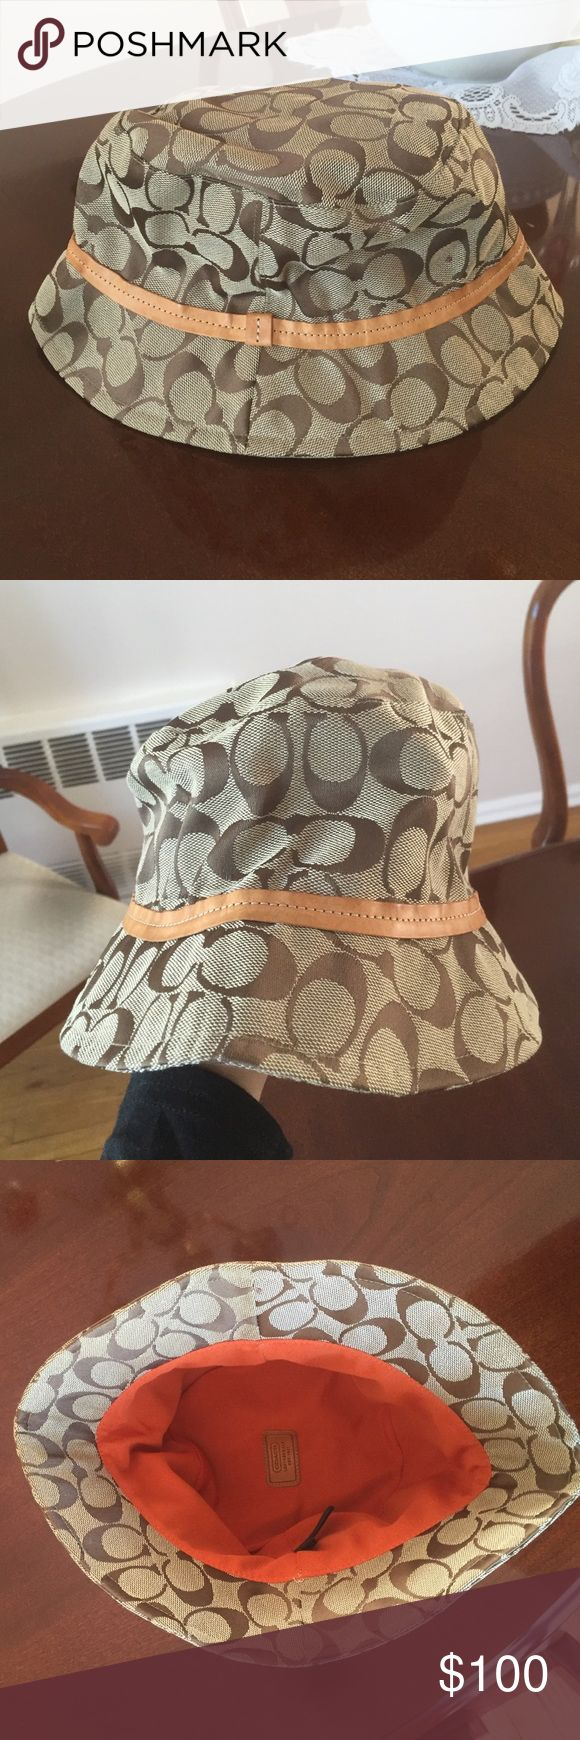 Authentic Coach hat Beautiful authentic  Coach hat. Worn but in excellent condition. Great for a sunny day or the beach Coach Accessories Hats